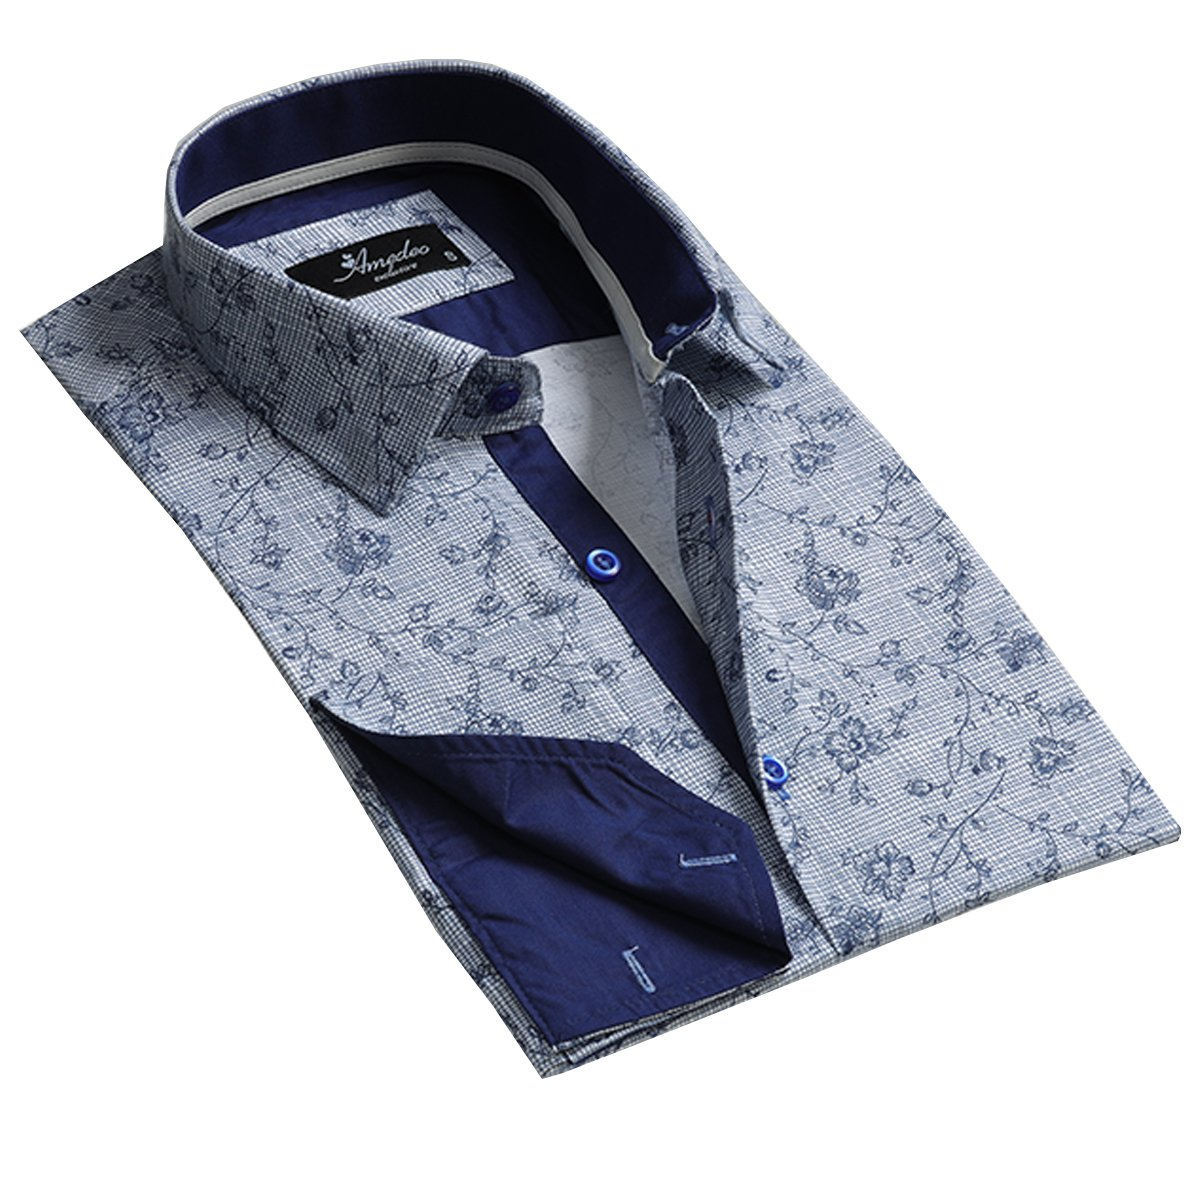 Blue and White Design Men's Reversible Dress Shirt, Button Down Slim Fit with French Cuff Casual and Formal - Amedeo Exclusive